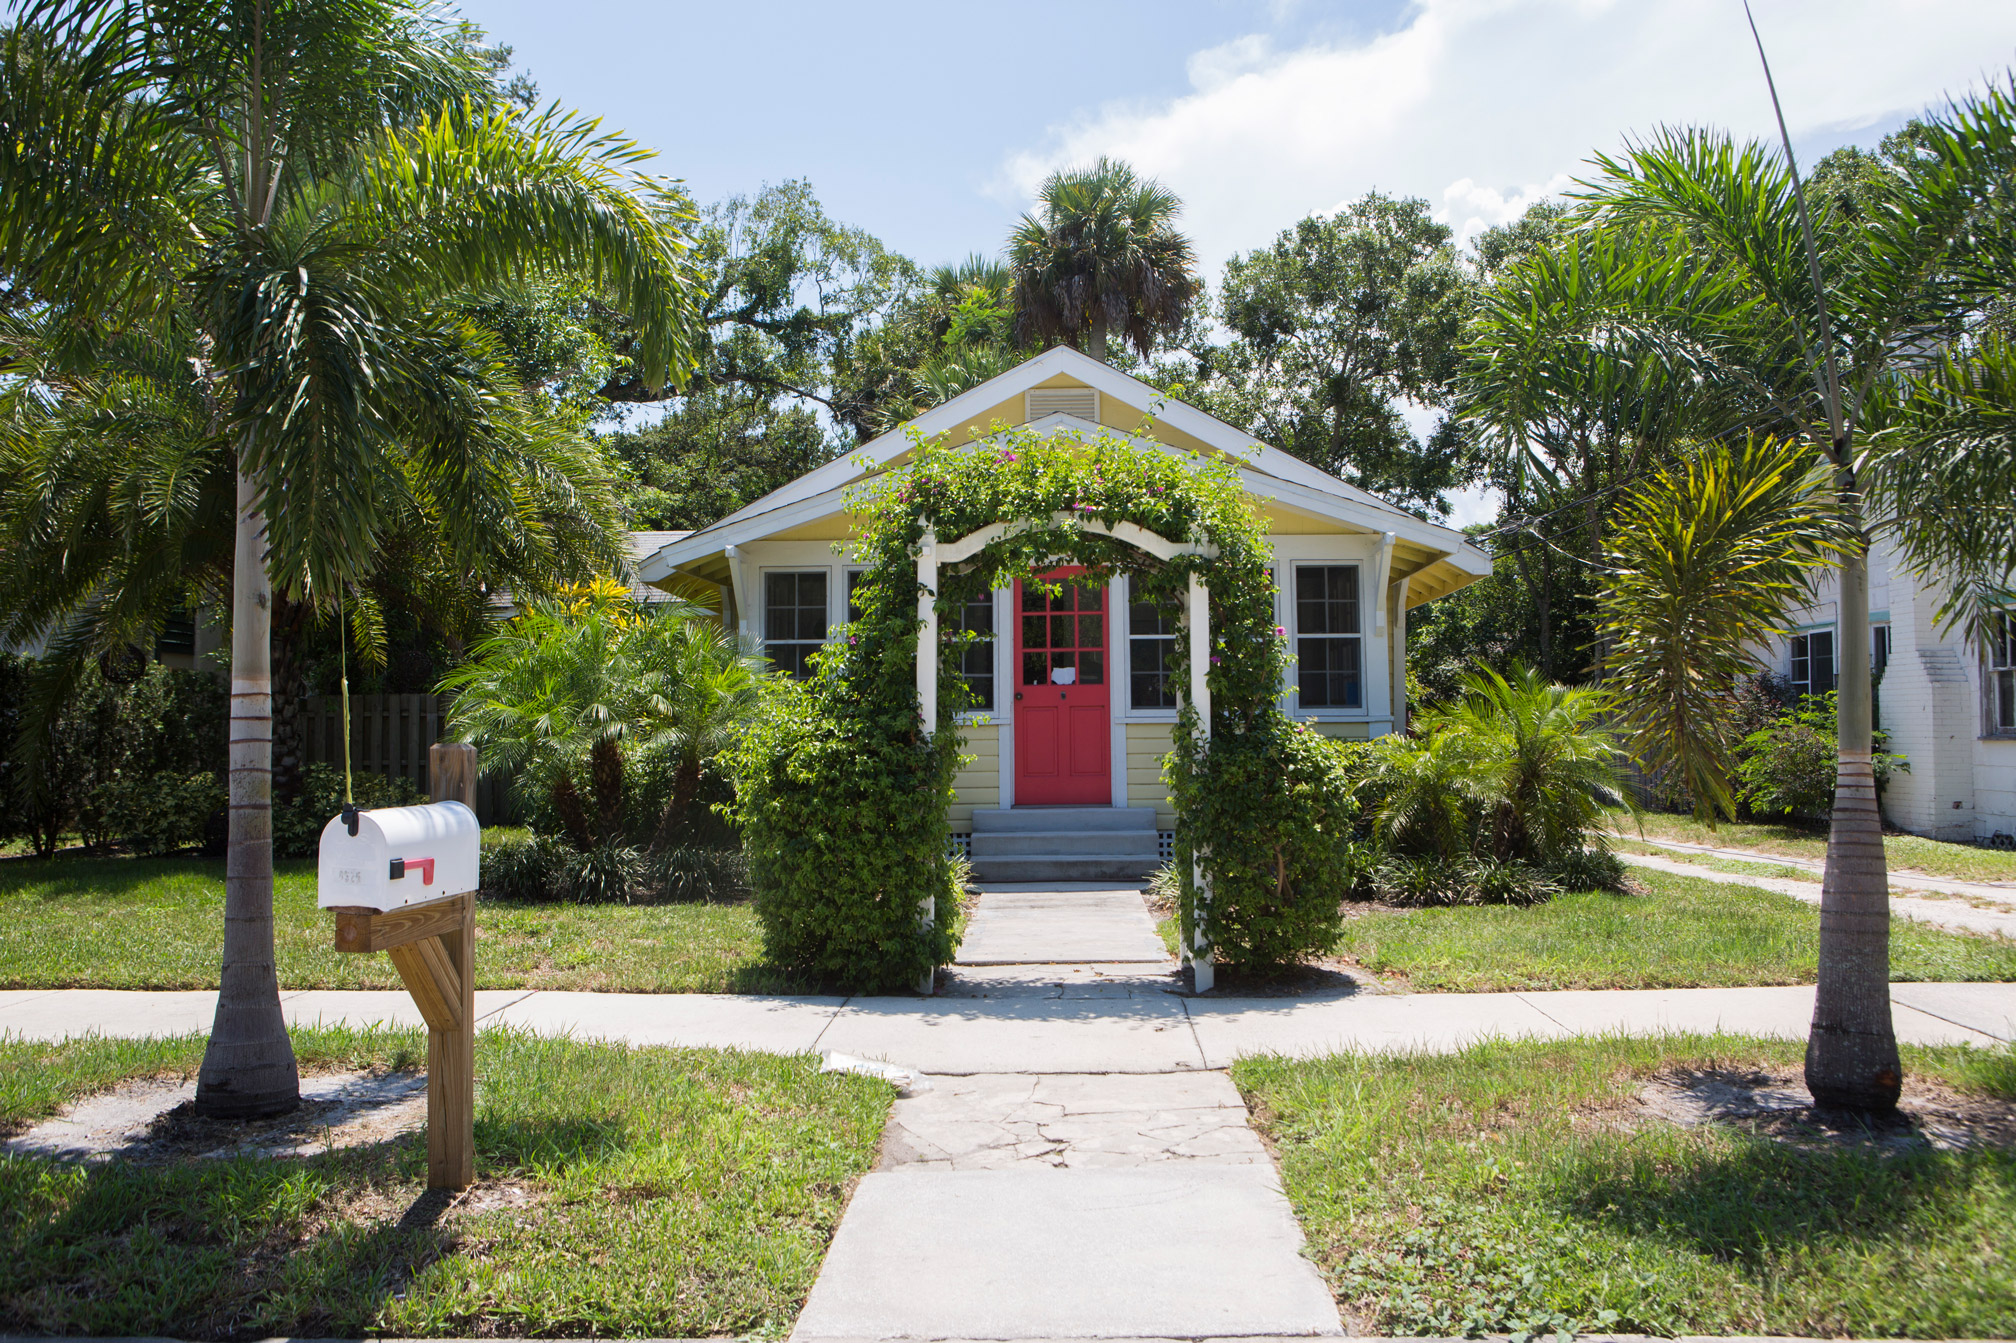 A Quaint Yellow House With Red Door In Vero Beach Style